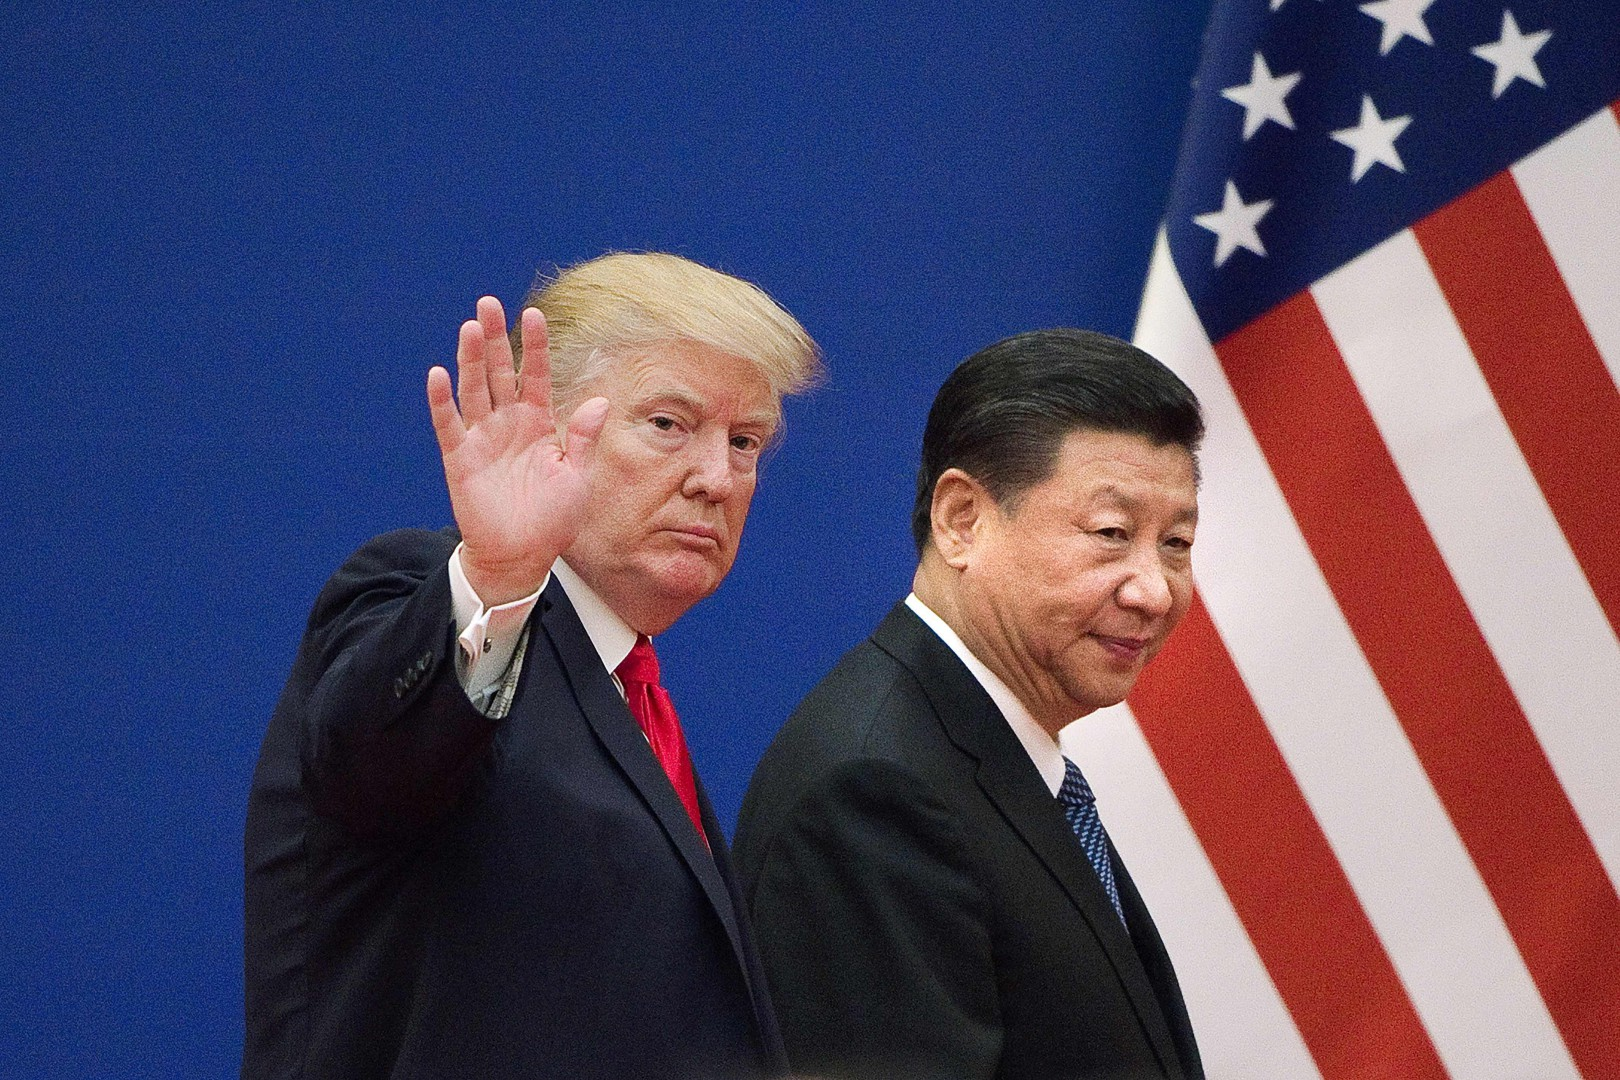 """(FILES) In this file photo taken on November 9, 2017 shows US President Donald Trump (L) and China's President Xi Jinping leaving a business leaders event at the Great Hall of the People in Beijing. - US President Donald Trump on August 24, 2018 announced the cancellation of his top diplomat's upcoming visit to North Korea, while taking a swipe at China over efforts to disarm the nuclear state. Trump says China is not 'helping' with North Korea. """"Additionally, because of our much tougher Trading stance with China, I do not believe they are helping with the process of denuclearization as they once were (despite the UN Sanctions which are in place),"""" Trump said. (Photo by Nicolas ASFOURI / AFP)"""